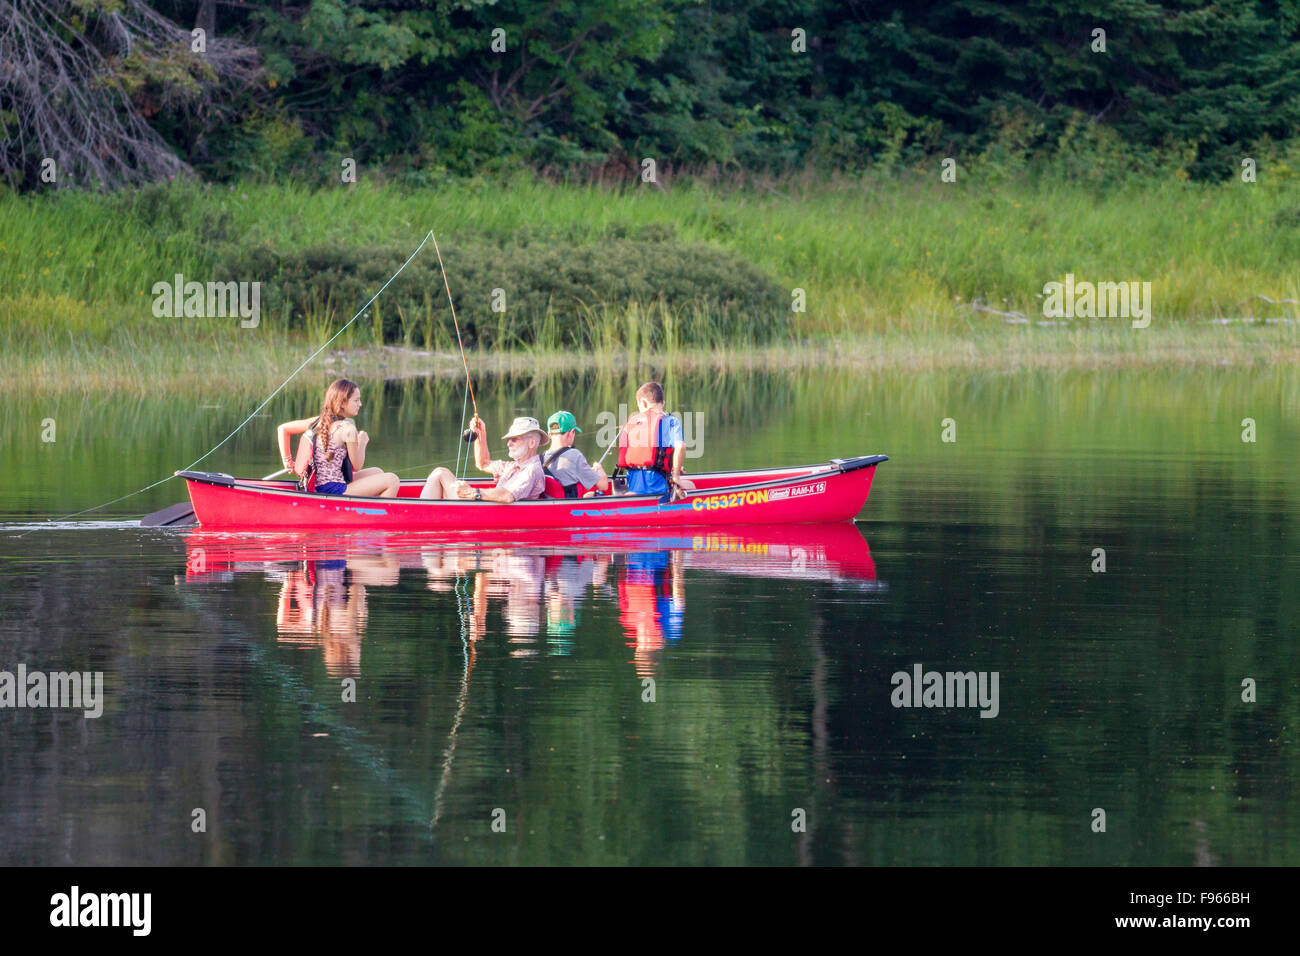 Family fishing on Crescent Lake in Lake Superior Provincial Park, Ontario, Canada - Stock Image